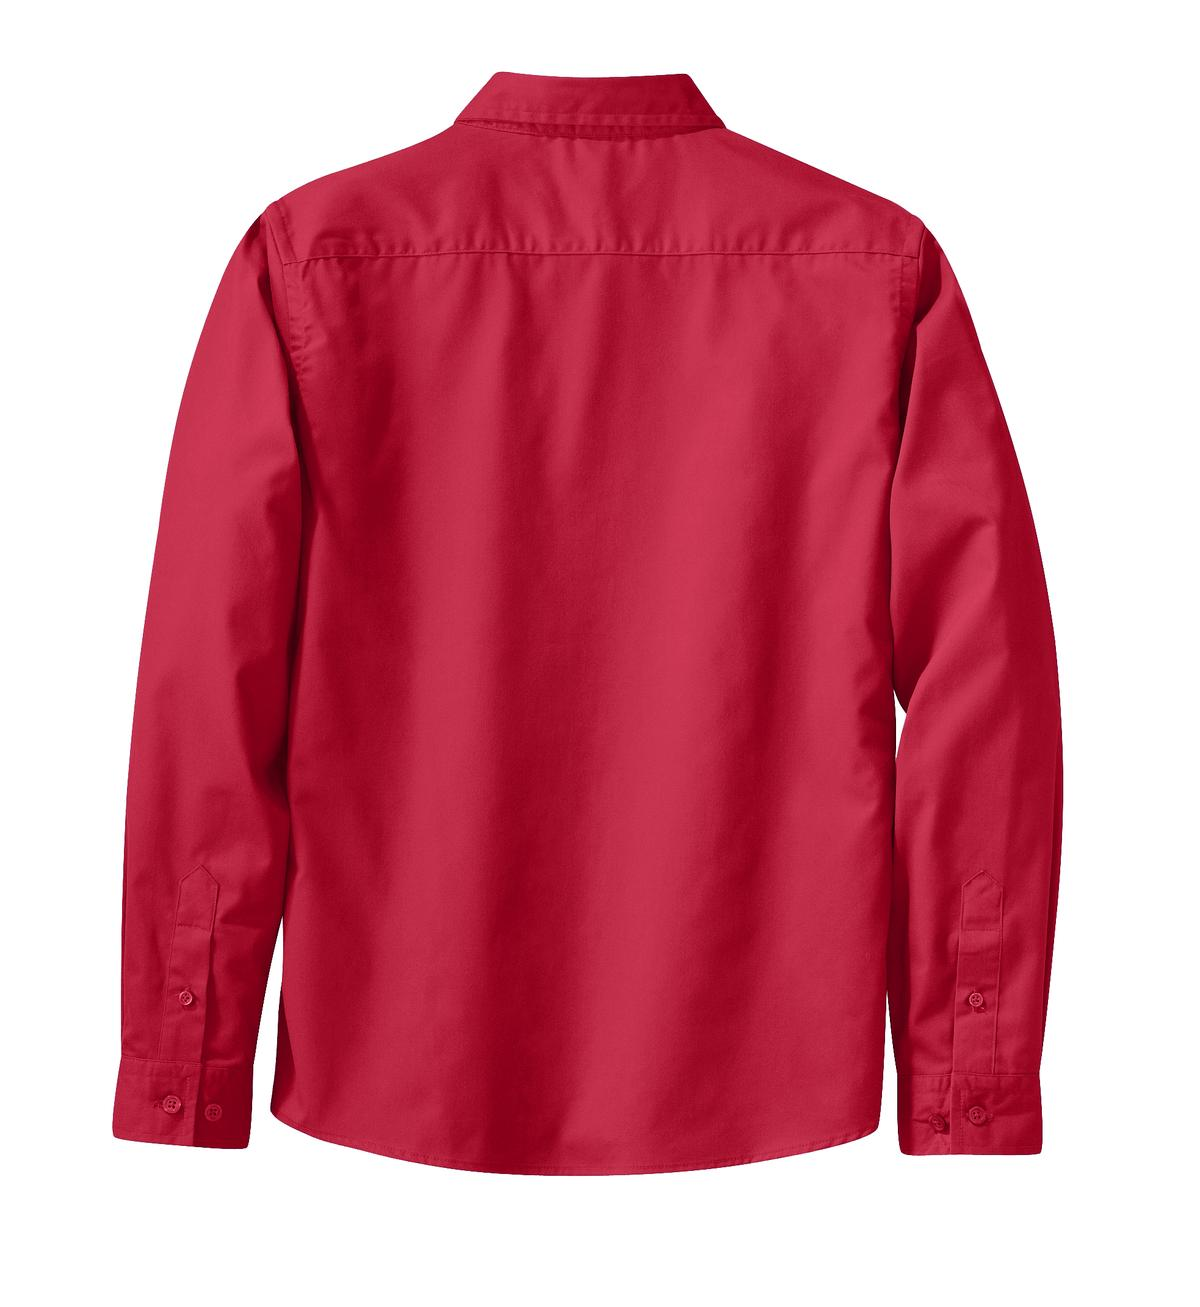 Mafoose Women's Long Sleeve Easy Care Shirt Red/Light Stone-Back